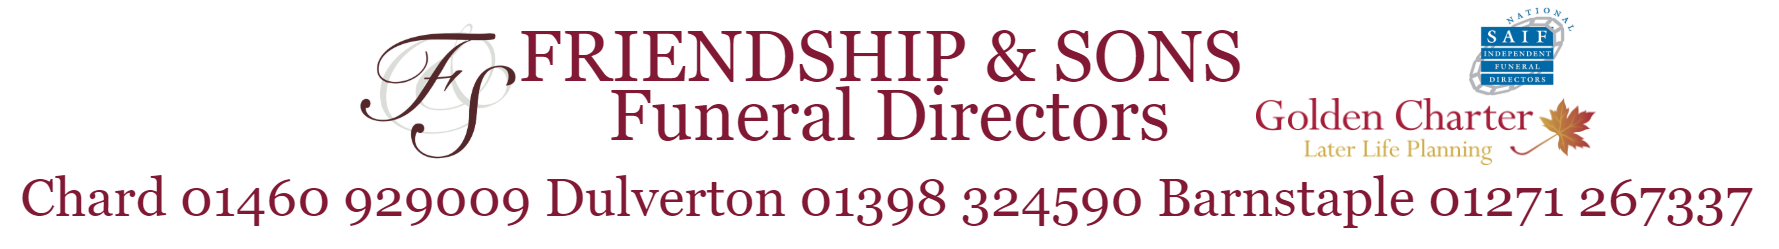 friendship and sons funeral directrors finance loan